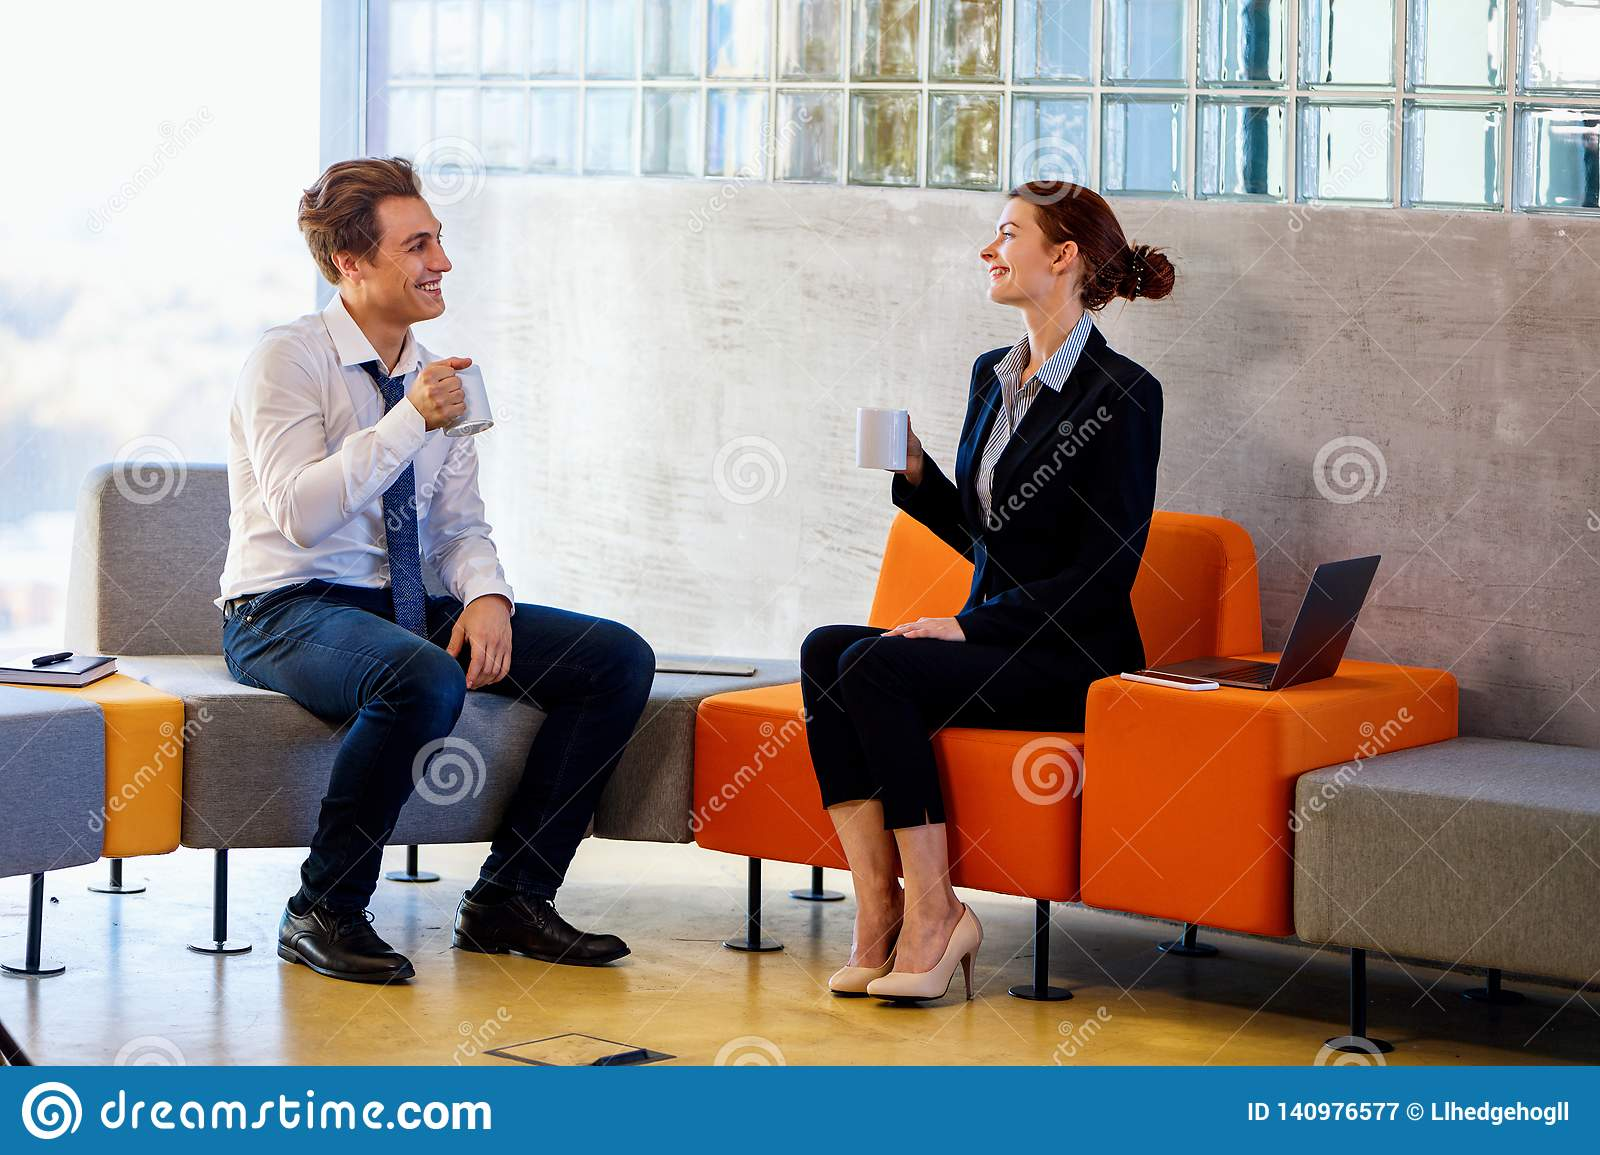 Two colleagues chatting on coffee break.